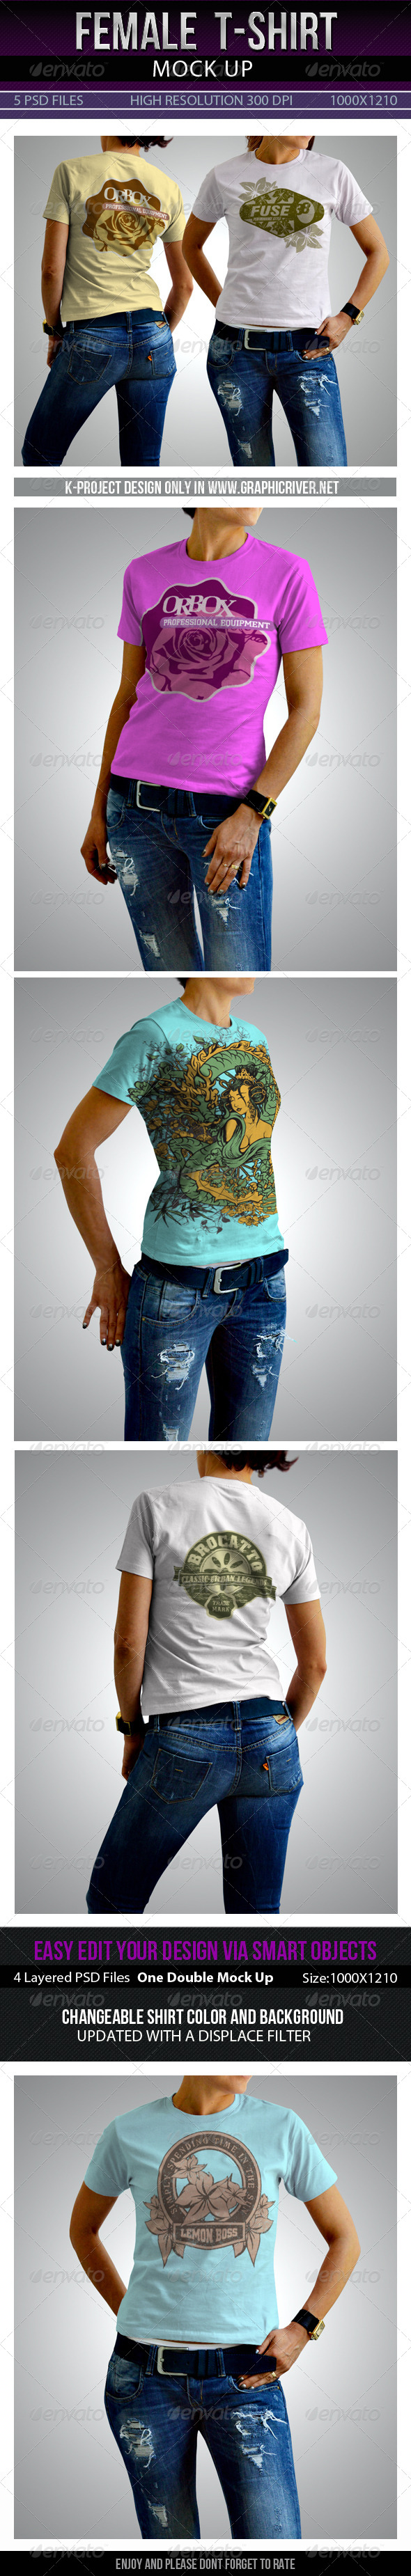 GraphicRiver Female T-Shirt Mock Up 7809700